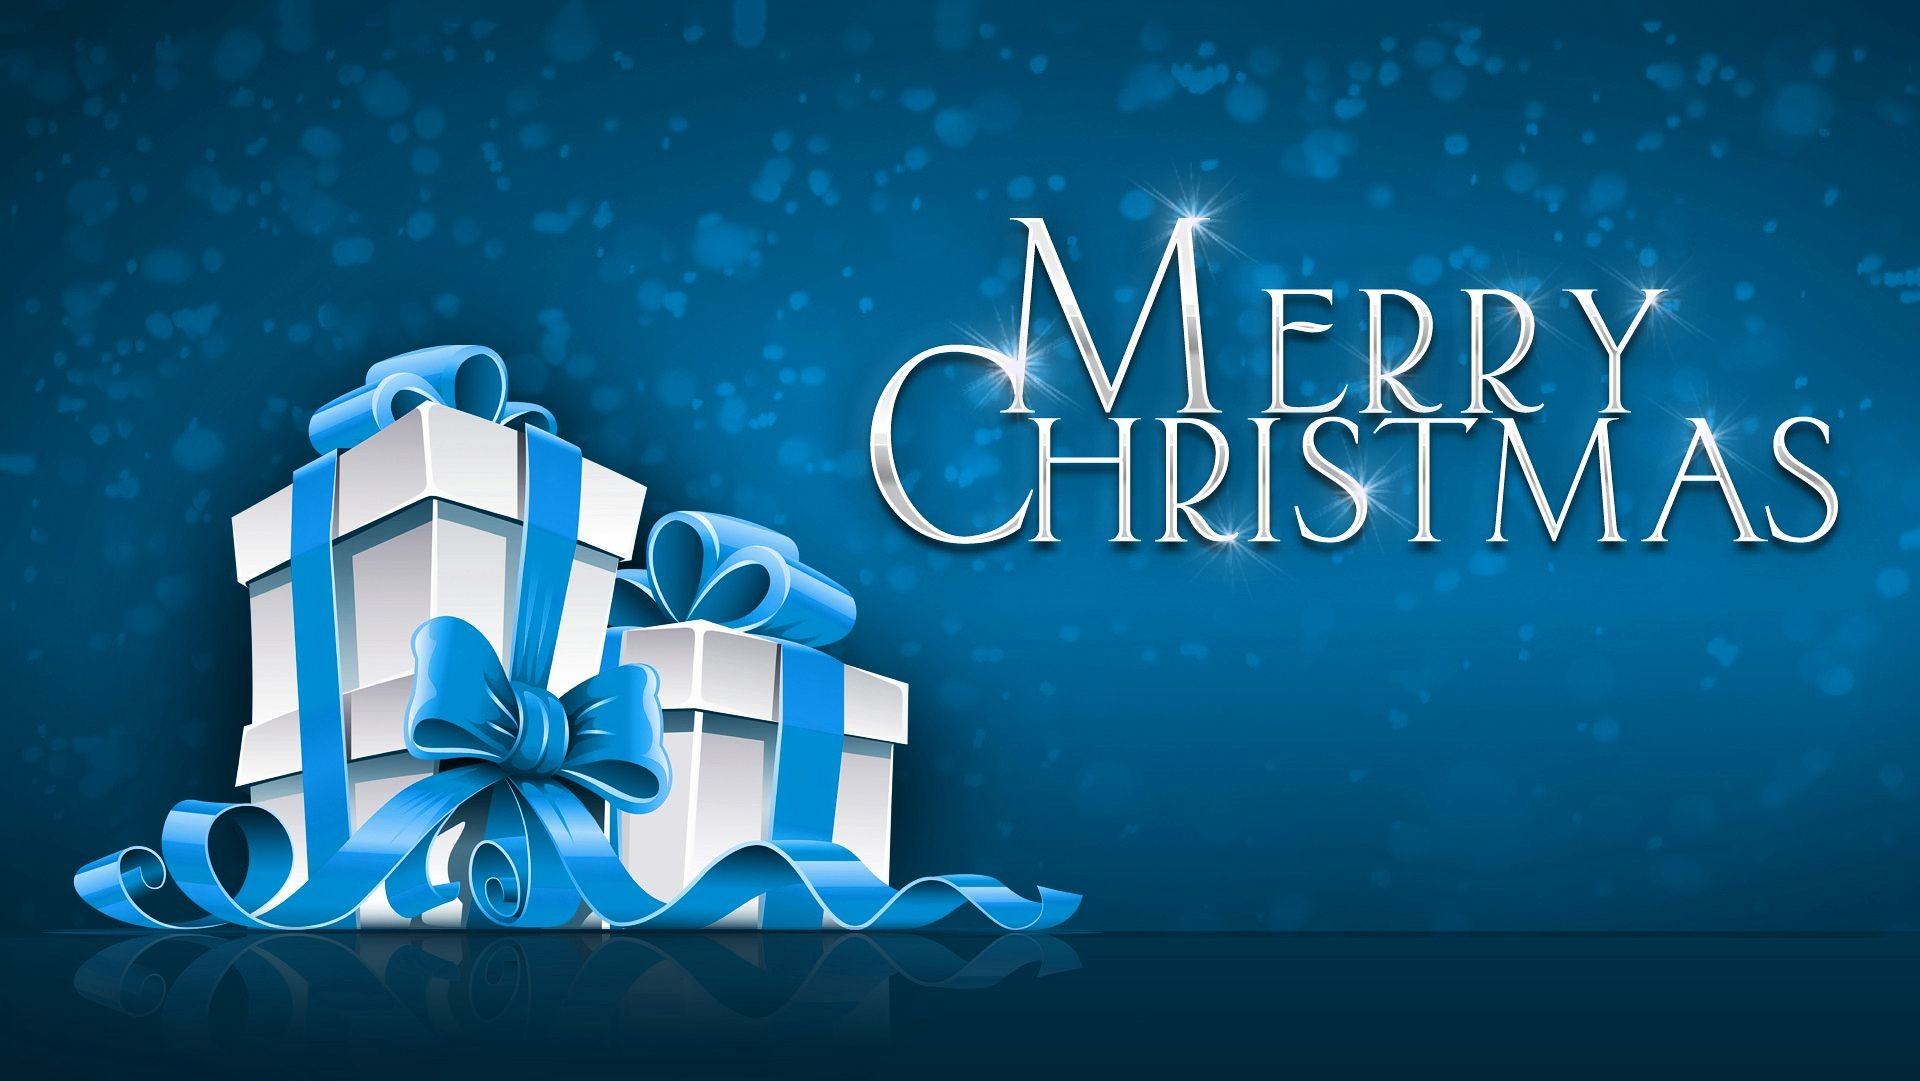 Res: 1920x1081, Merry Christmas 1080p Image, Hd images for christmas, Merry Christmas 720p  images-https